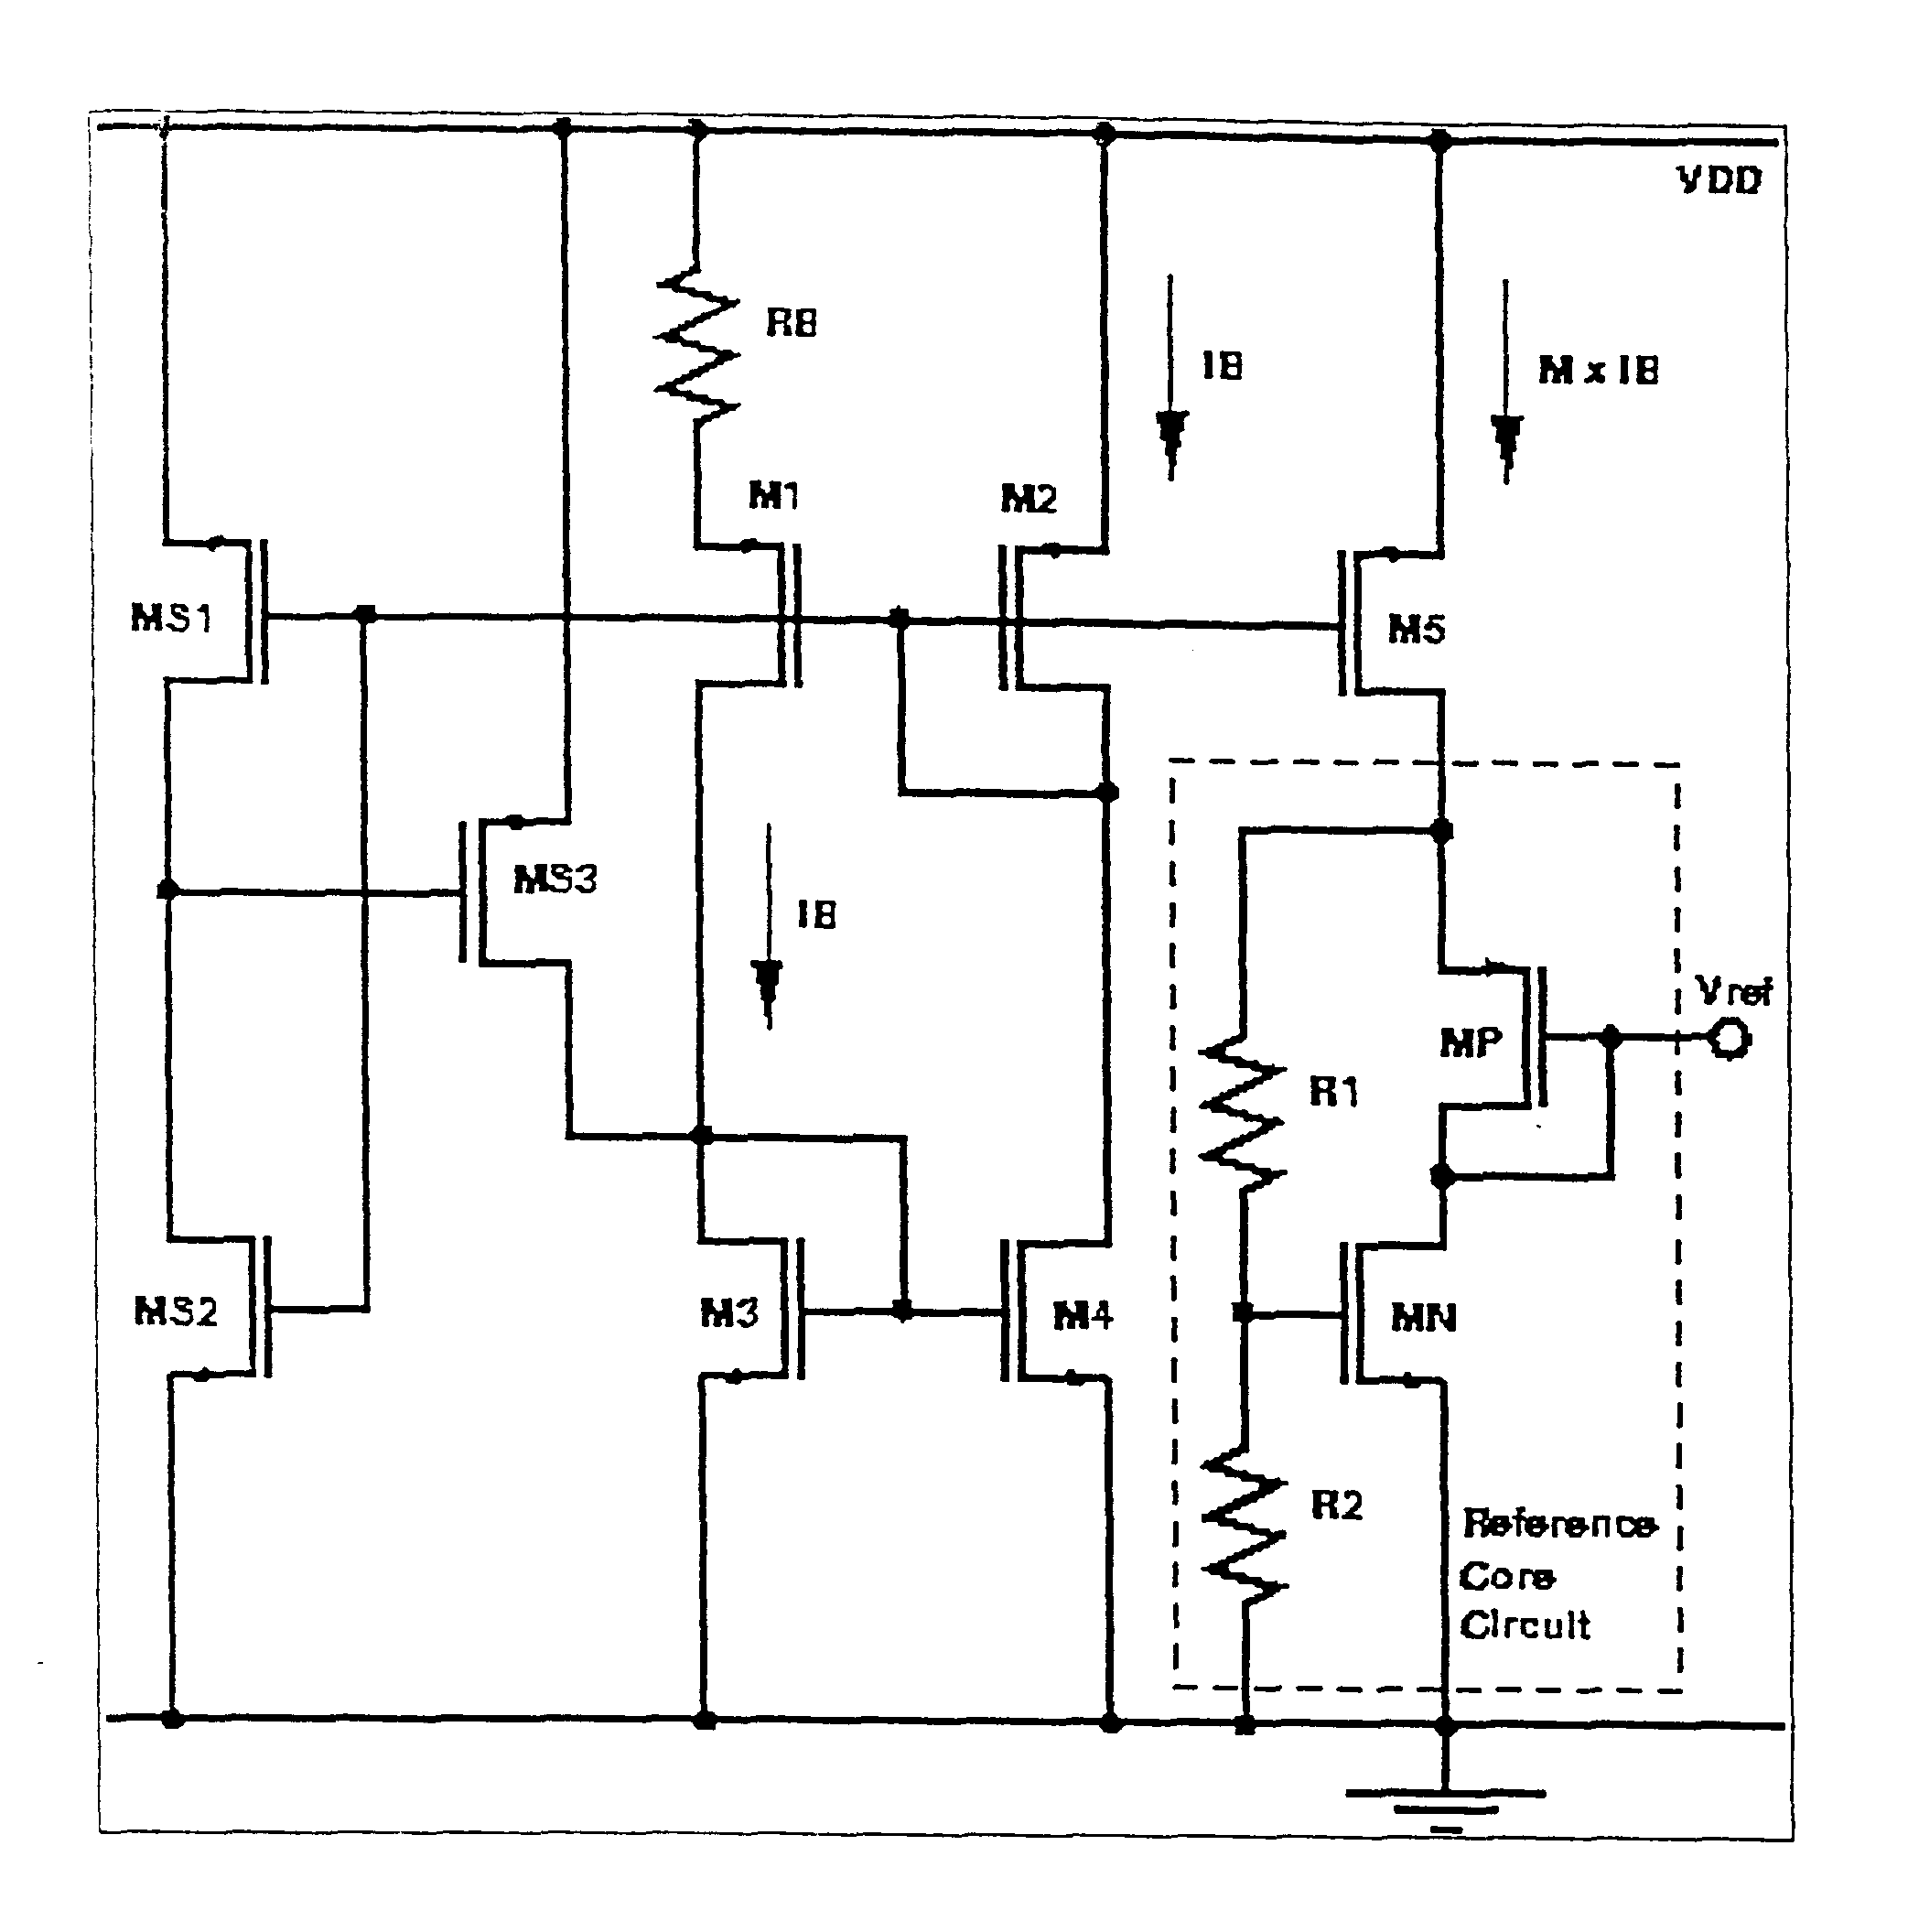 patent us6441680 - cmos voltage reference